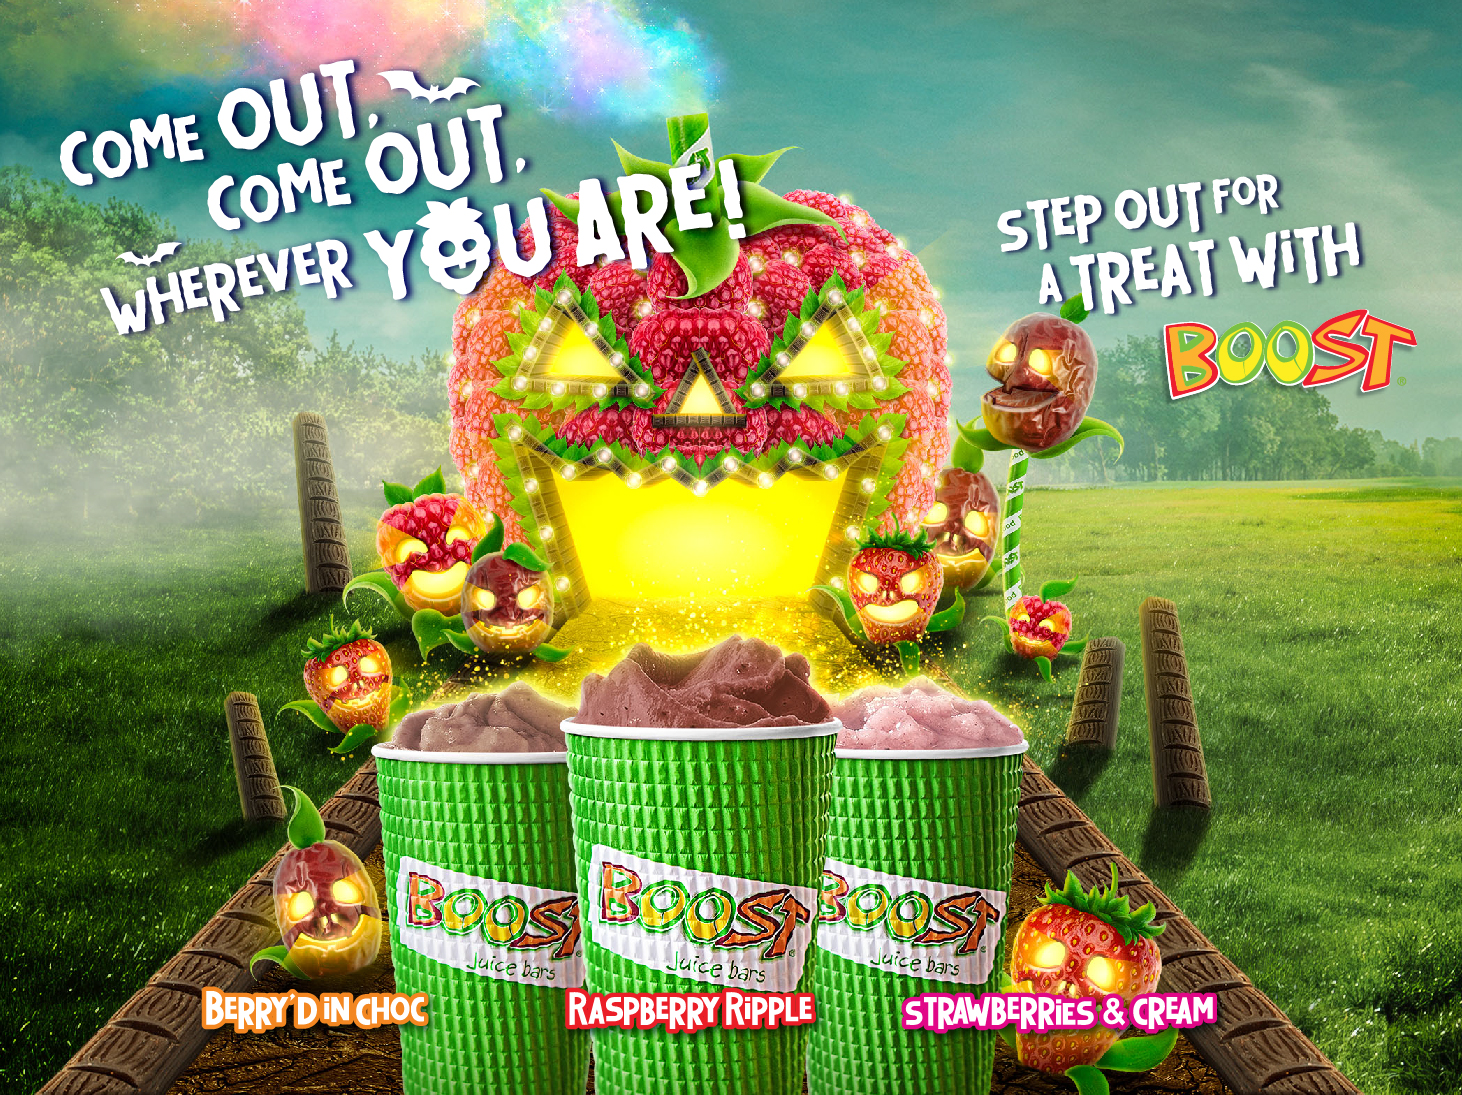 Step Out for a Treat with Boost Juice Bars